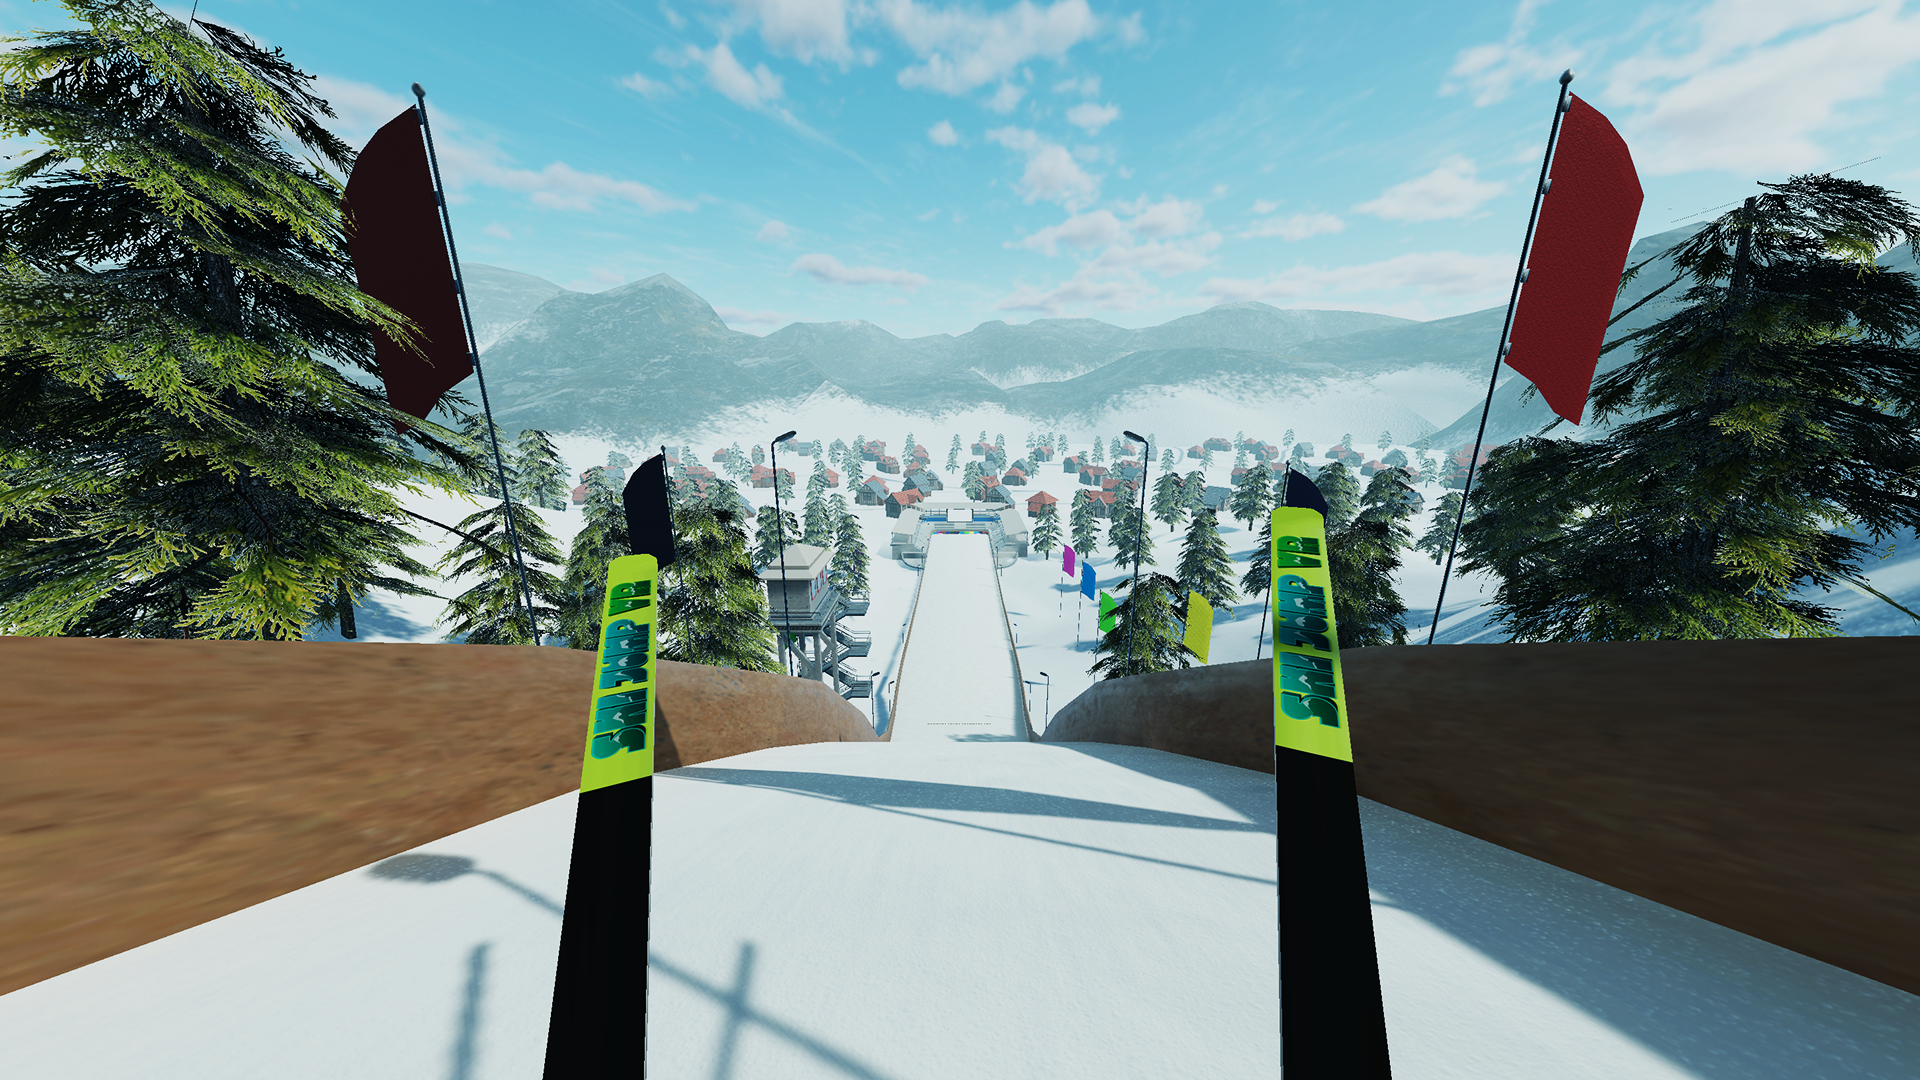 The Amazing ski jumping vr with regard to Your home